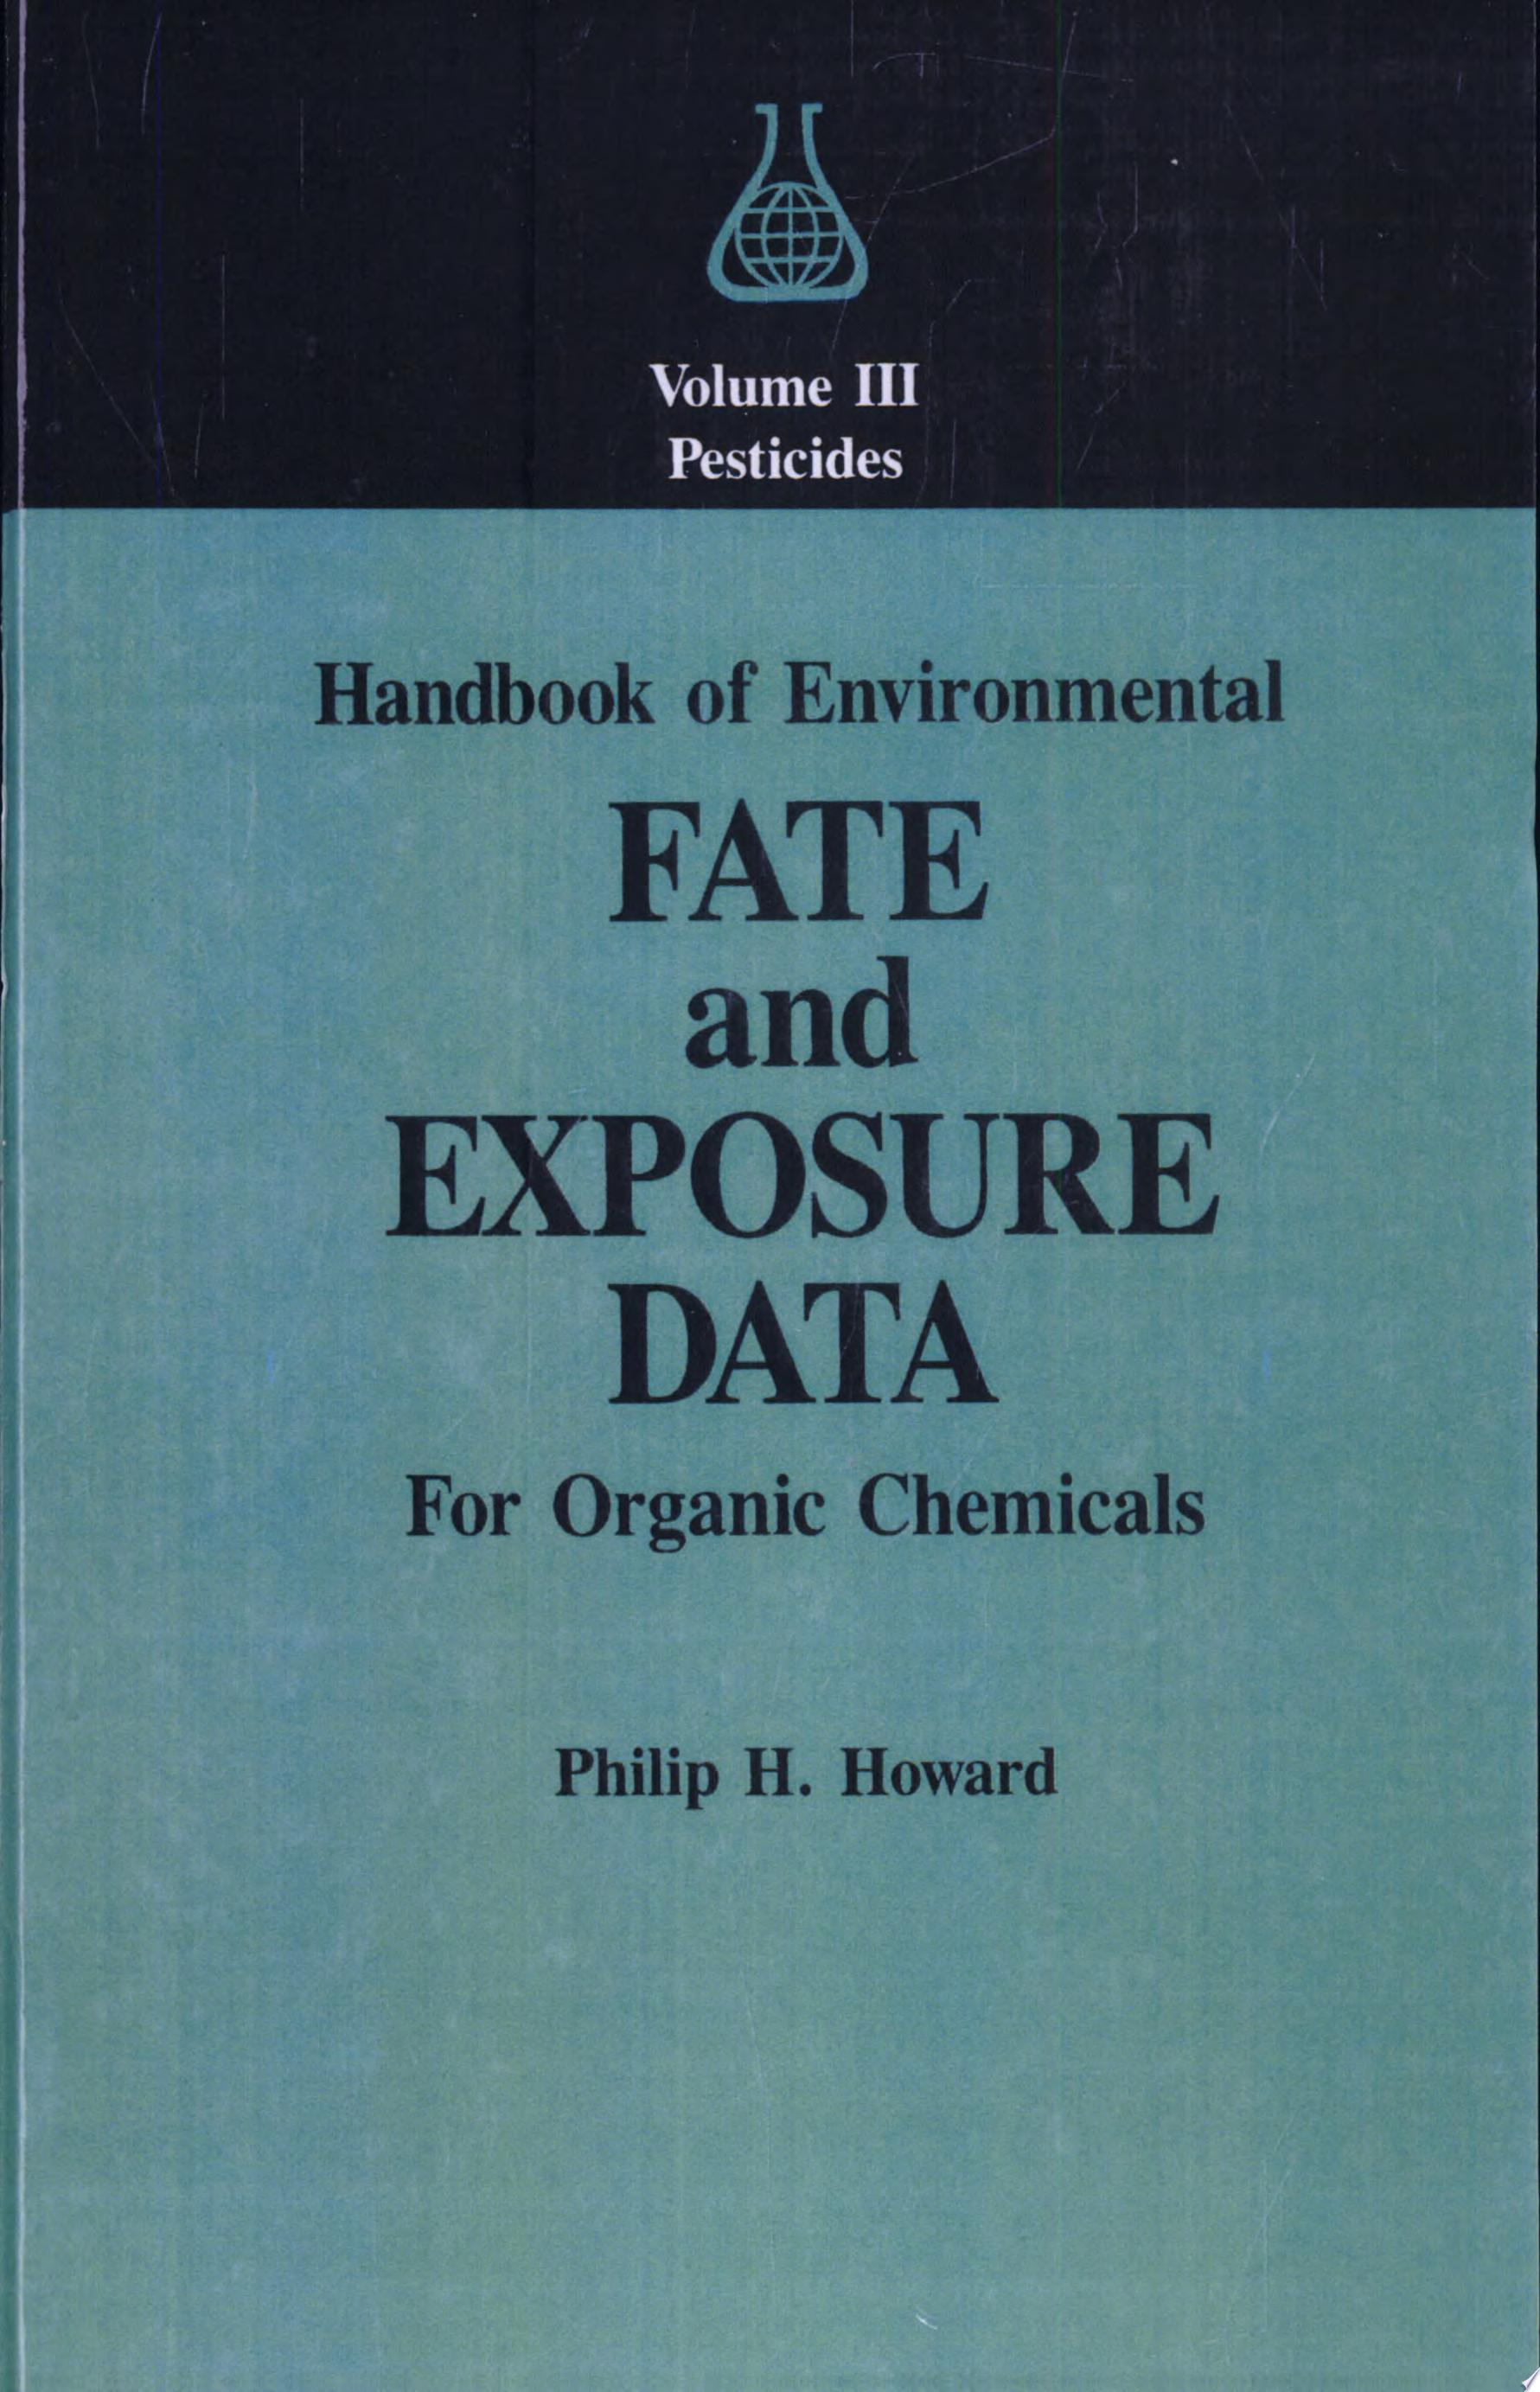 Handbook of Environmental Fate and Exposure Data